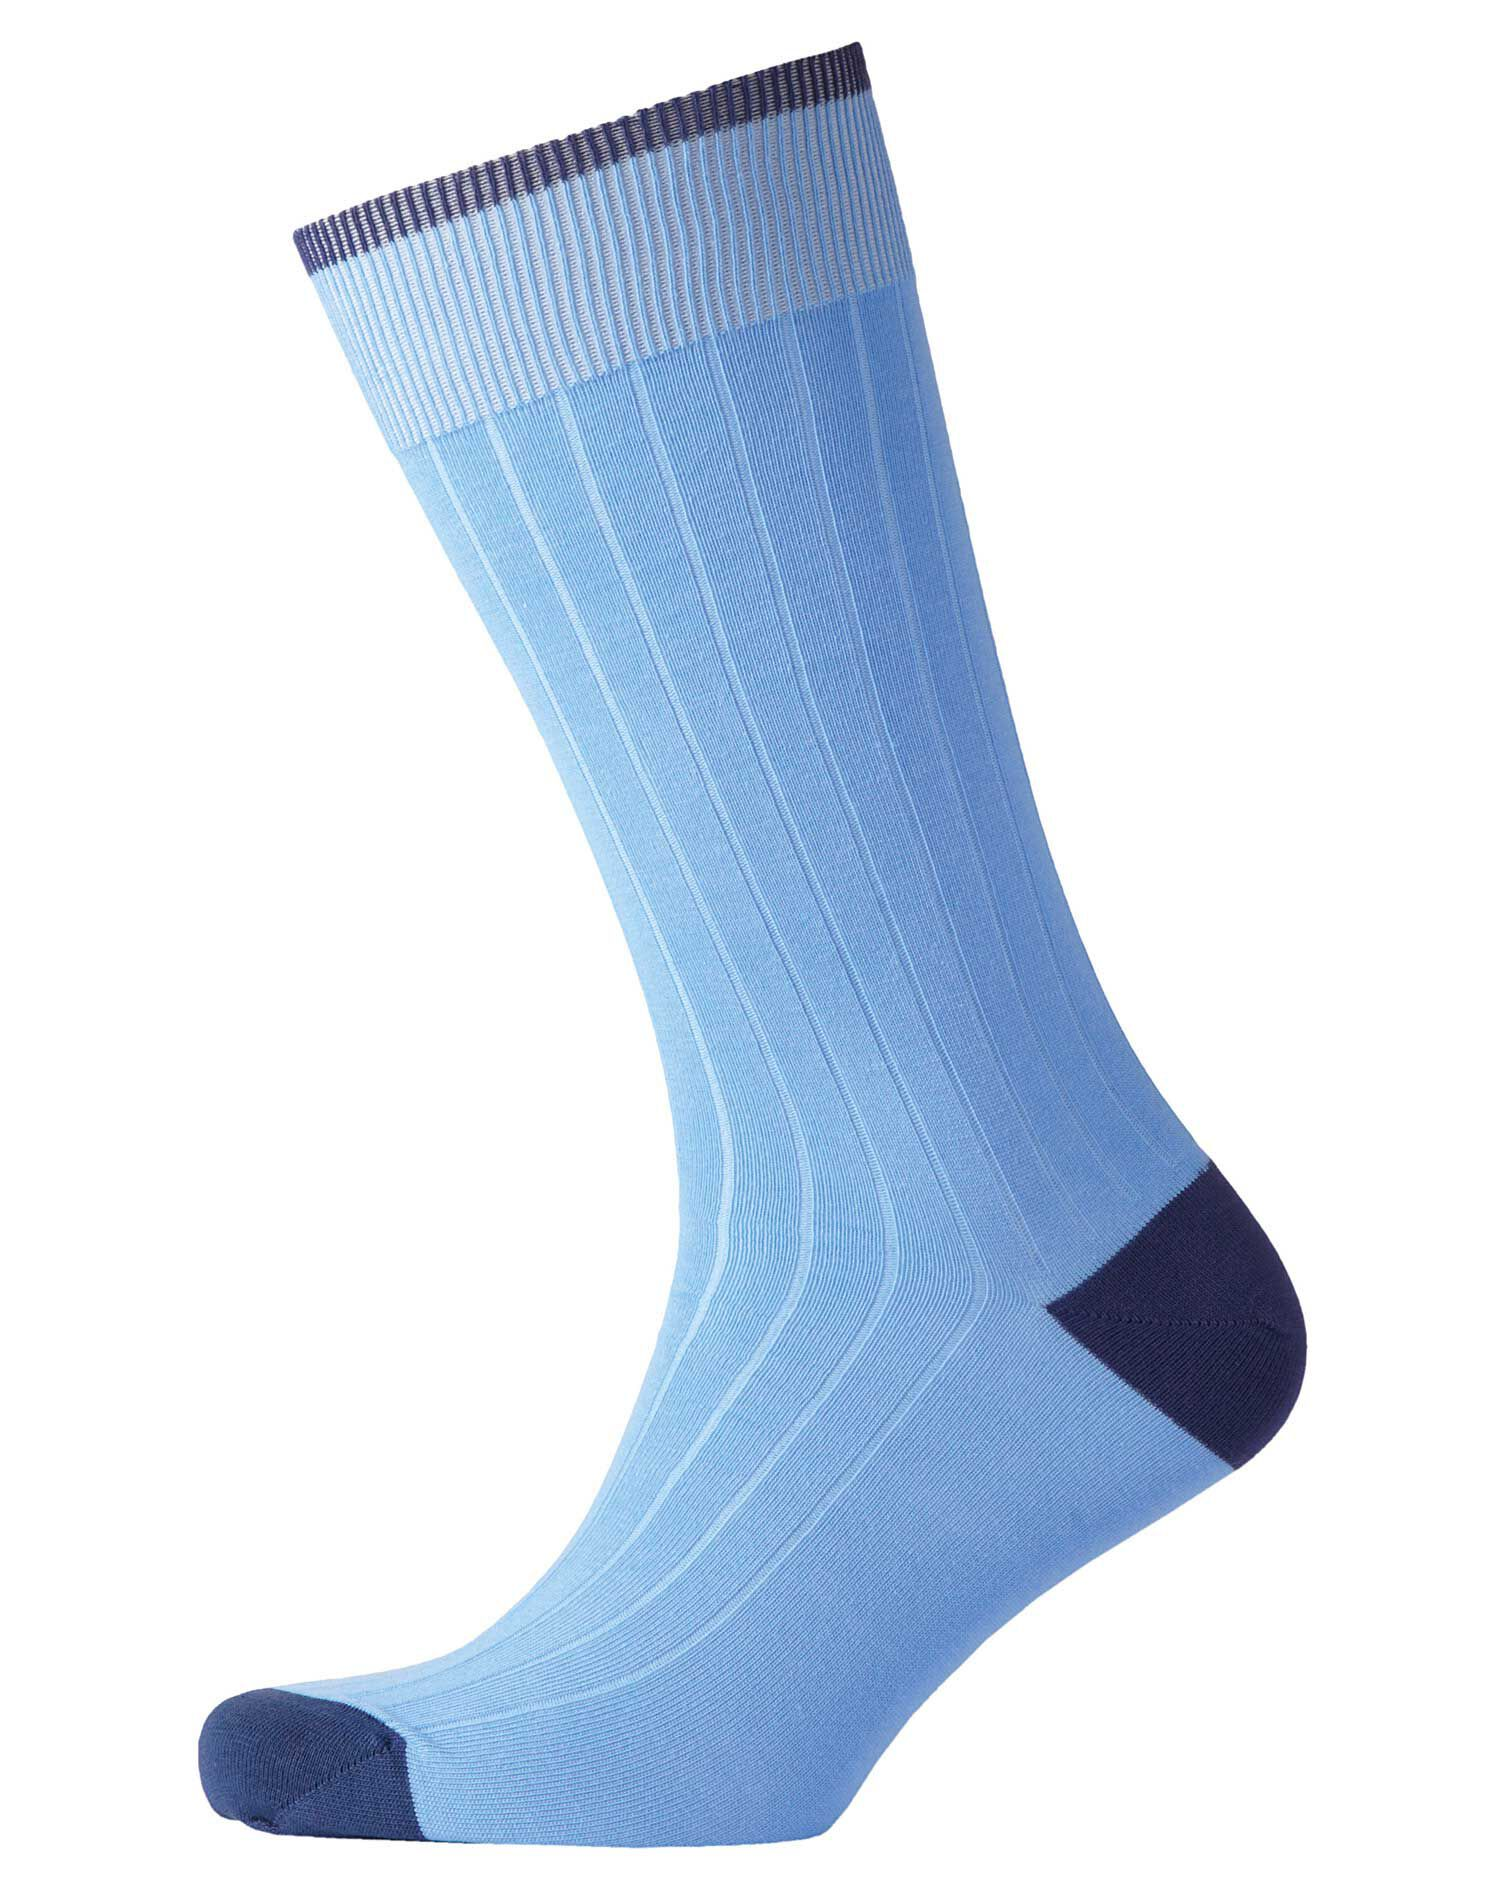 Sky Ribbed Soks Size Medium by Charles Tyrwhitt